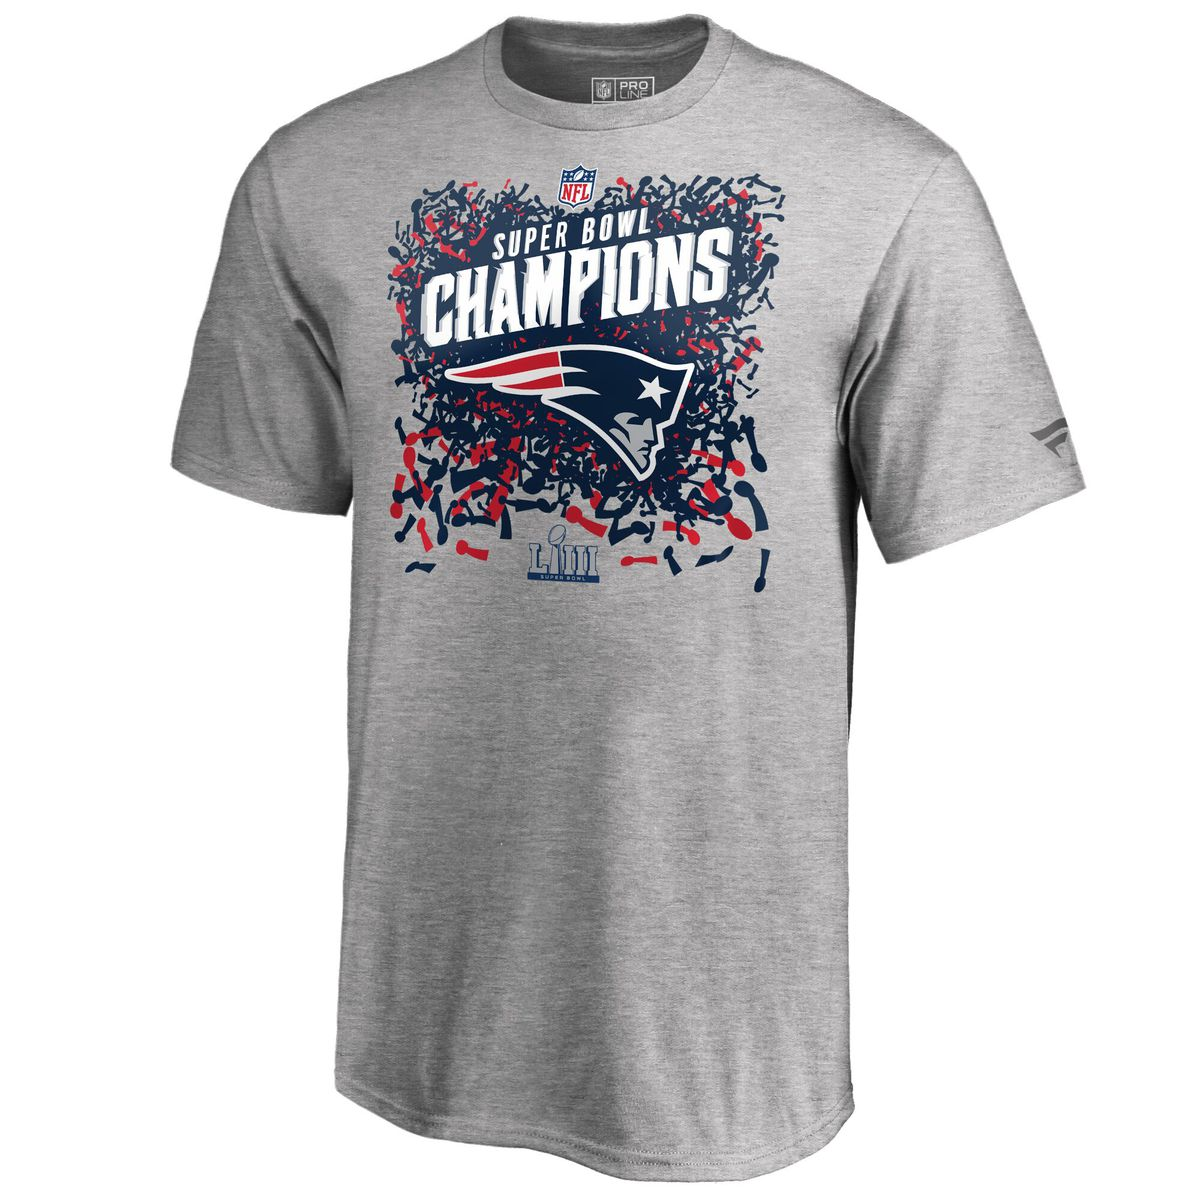 7100673a2 The Patriots Super Bowl 53 T-shirts. Super Bowl Champs Trophy Collection T- shirt for $34.99 Fanatics